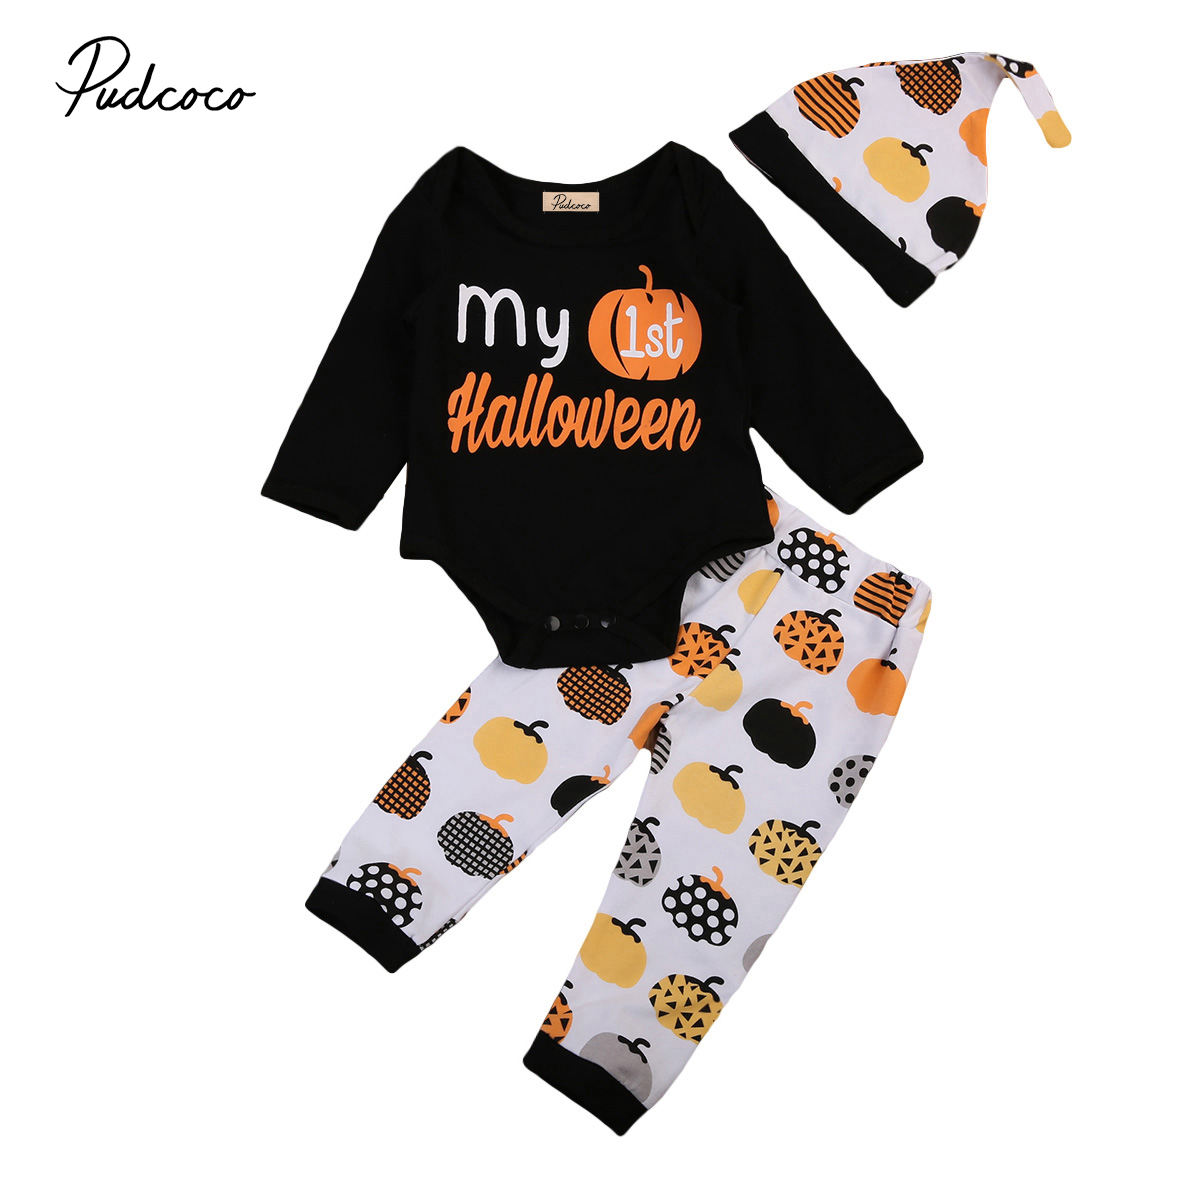 2017 Brand New Infant Toddler Newborn Baby Boy Girl Hallowen Long Sleeve Bodysuit Jumpsuit Pants Leggings Hat 3Pcs Outfits Set 0 24m newborn infant baby boy girl clothes set romper bodysuit tops rainbow long pants hat 3pcs toddler winter fall outfits